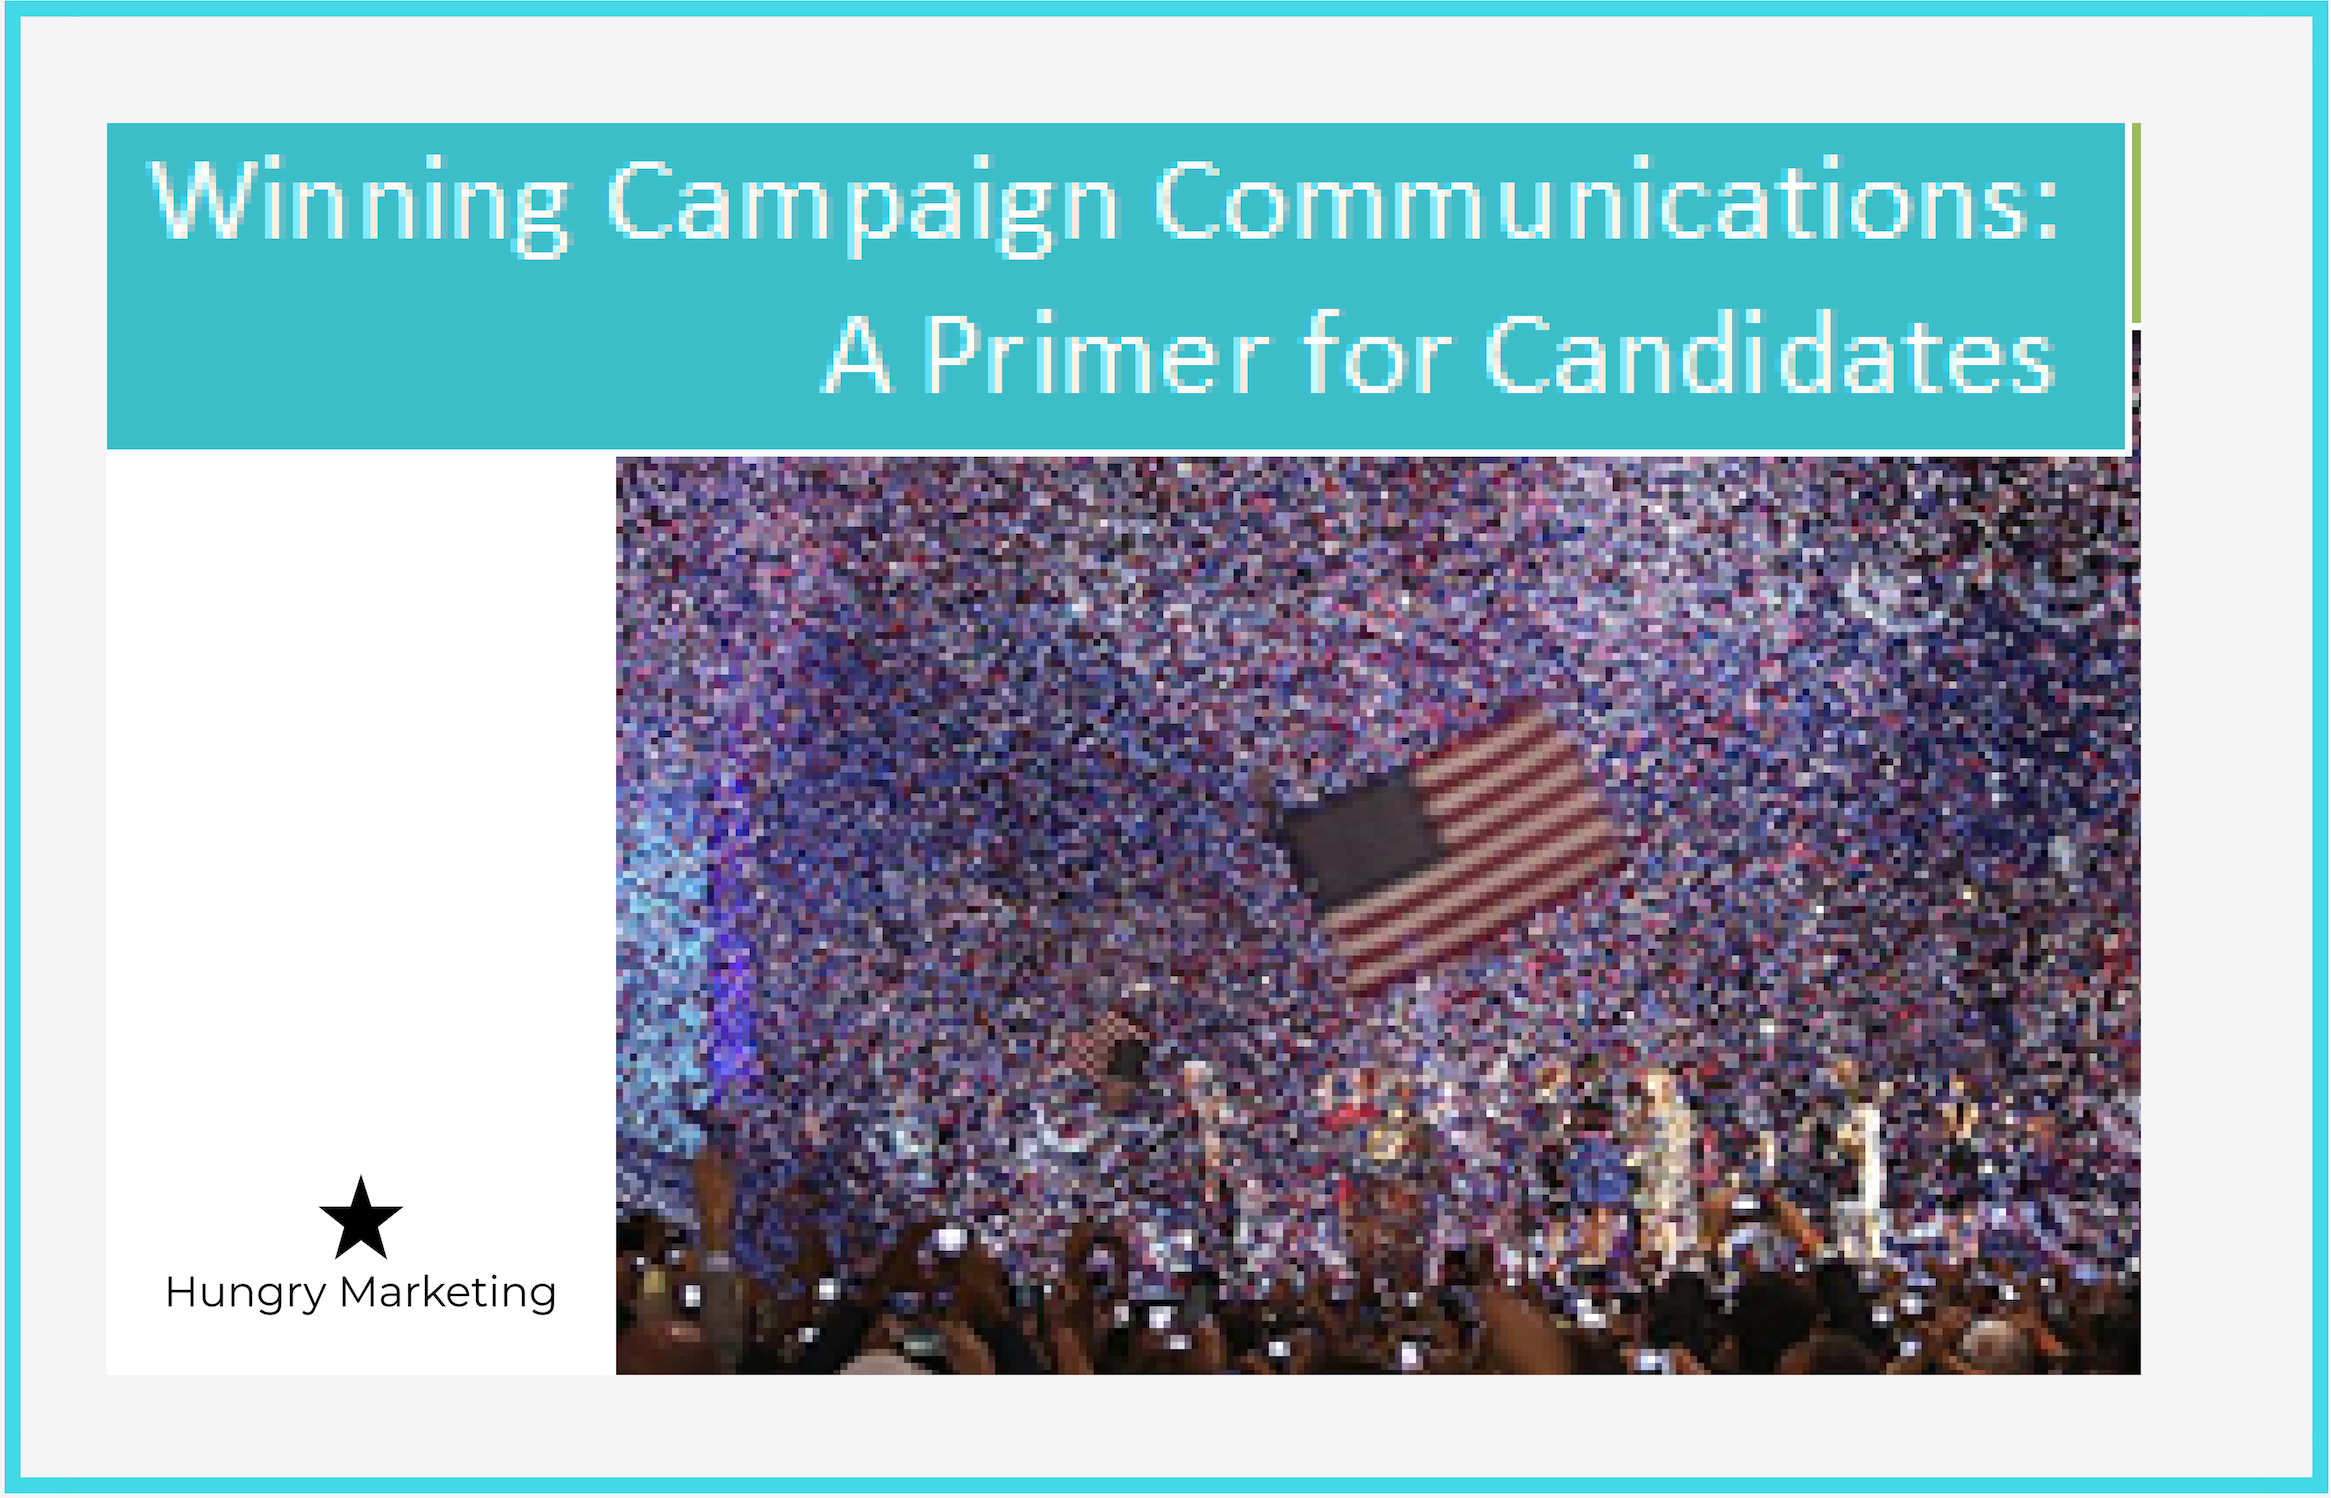 Winning Campaign Communicaitons a Primer for Candidates for (2).png